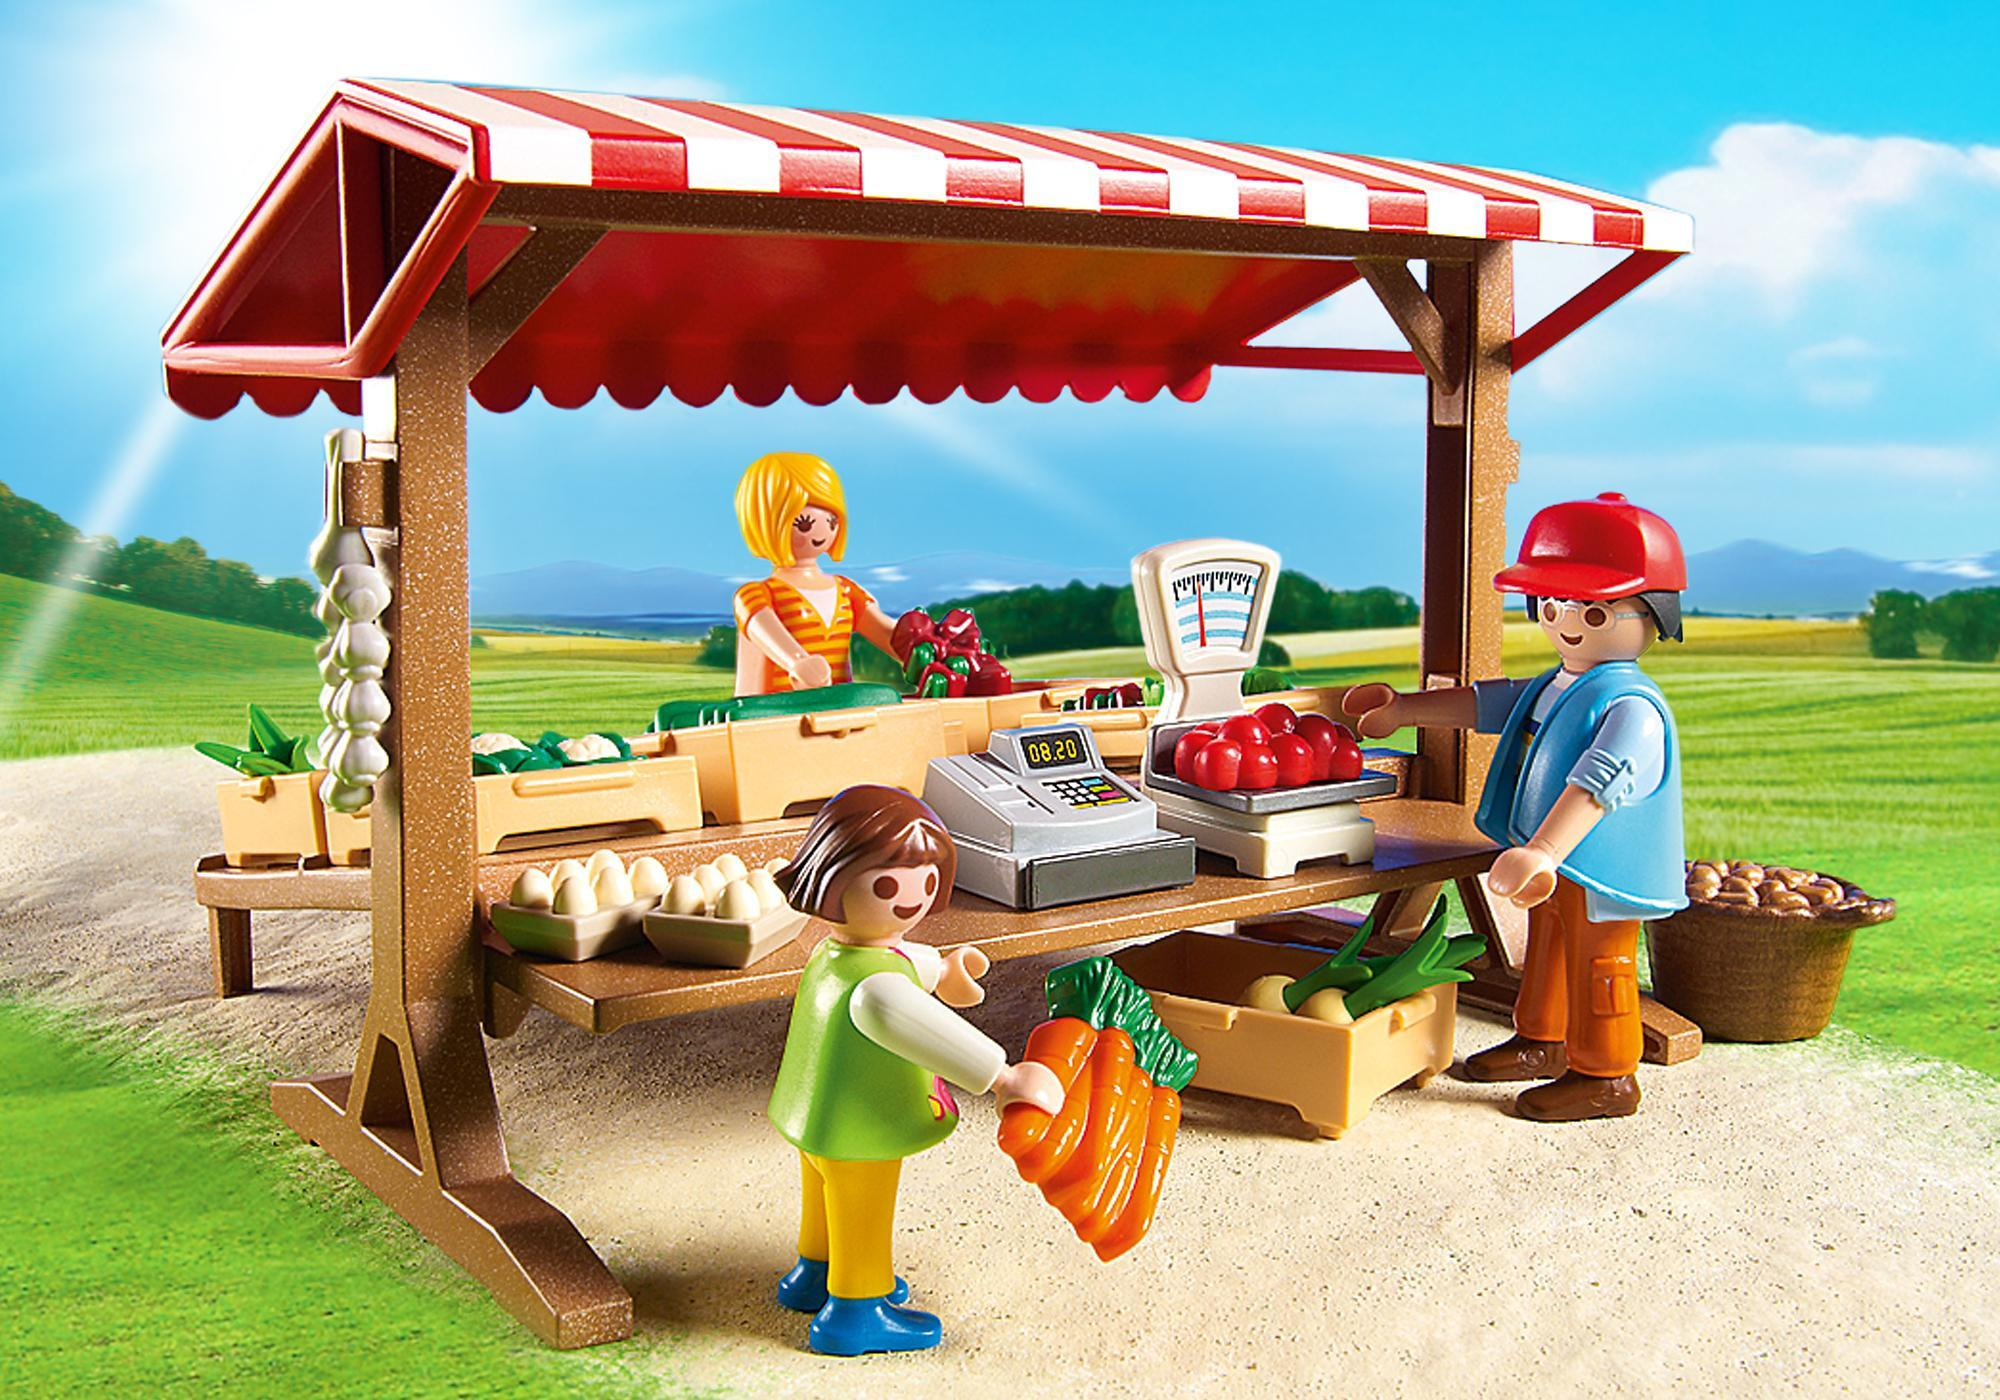 http://media.playmobil.com/i/playmobil/6121_product_extra1